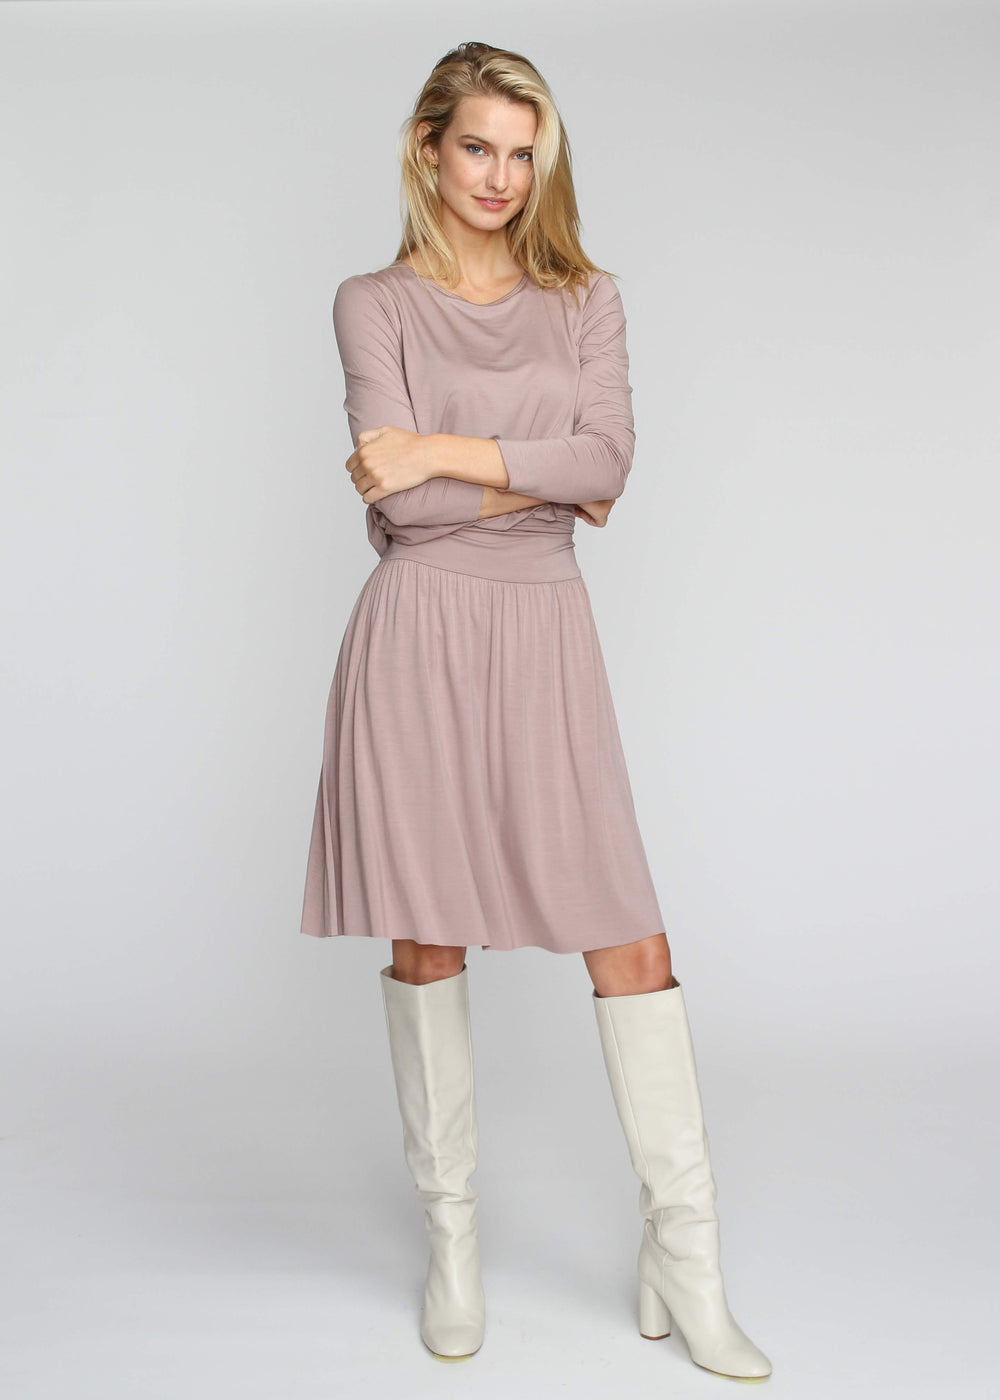 Band Skirt - Taupe - The Frock NYC